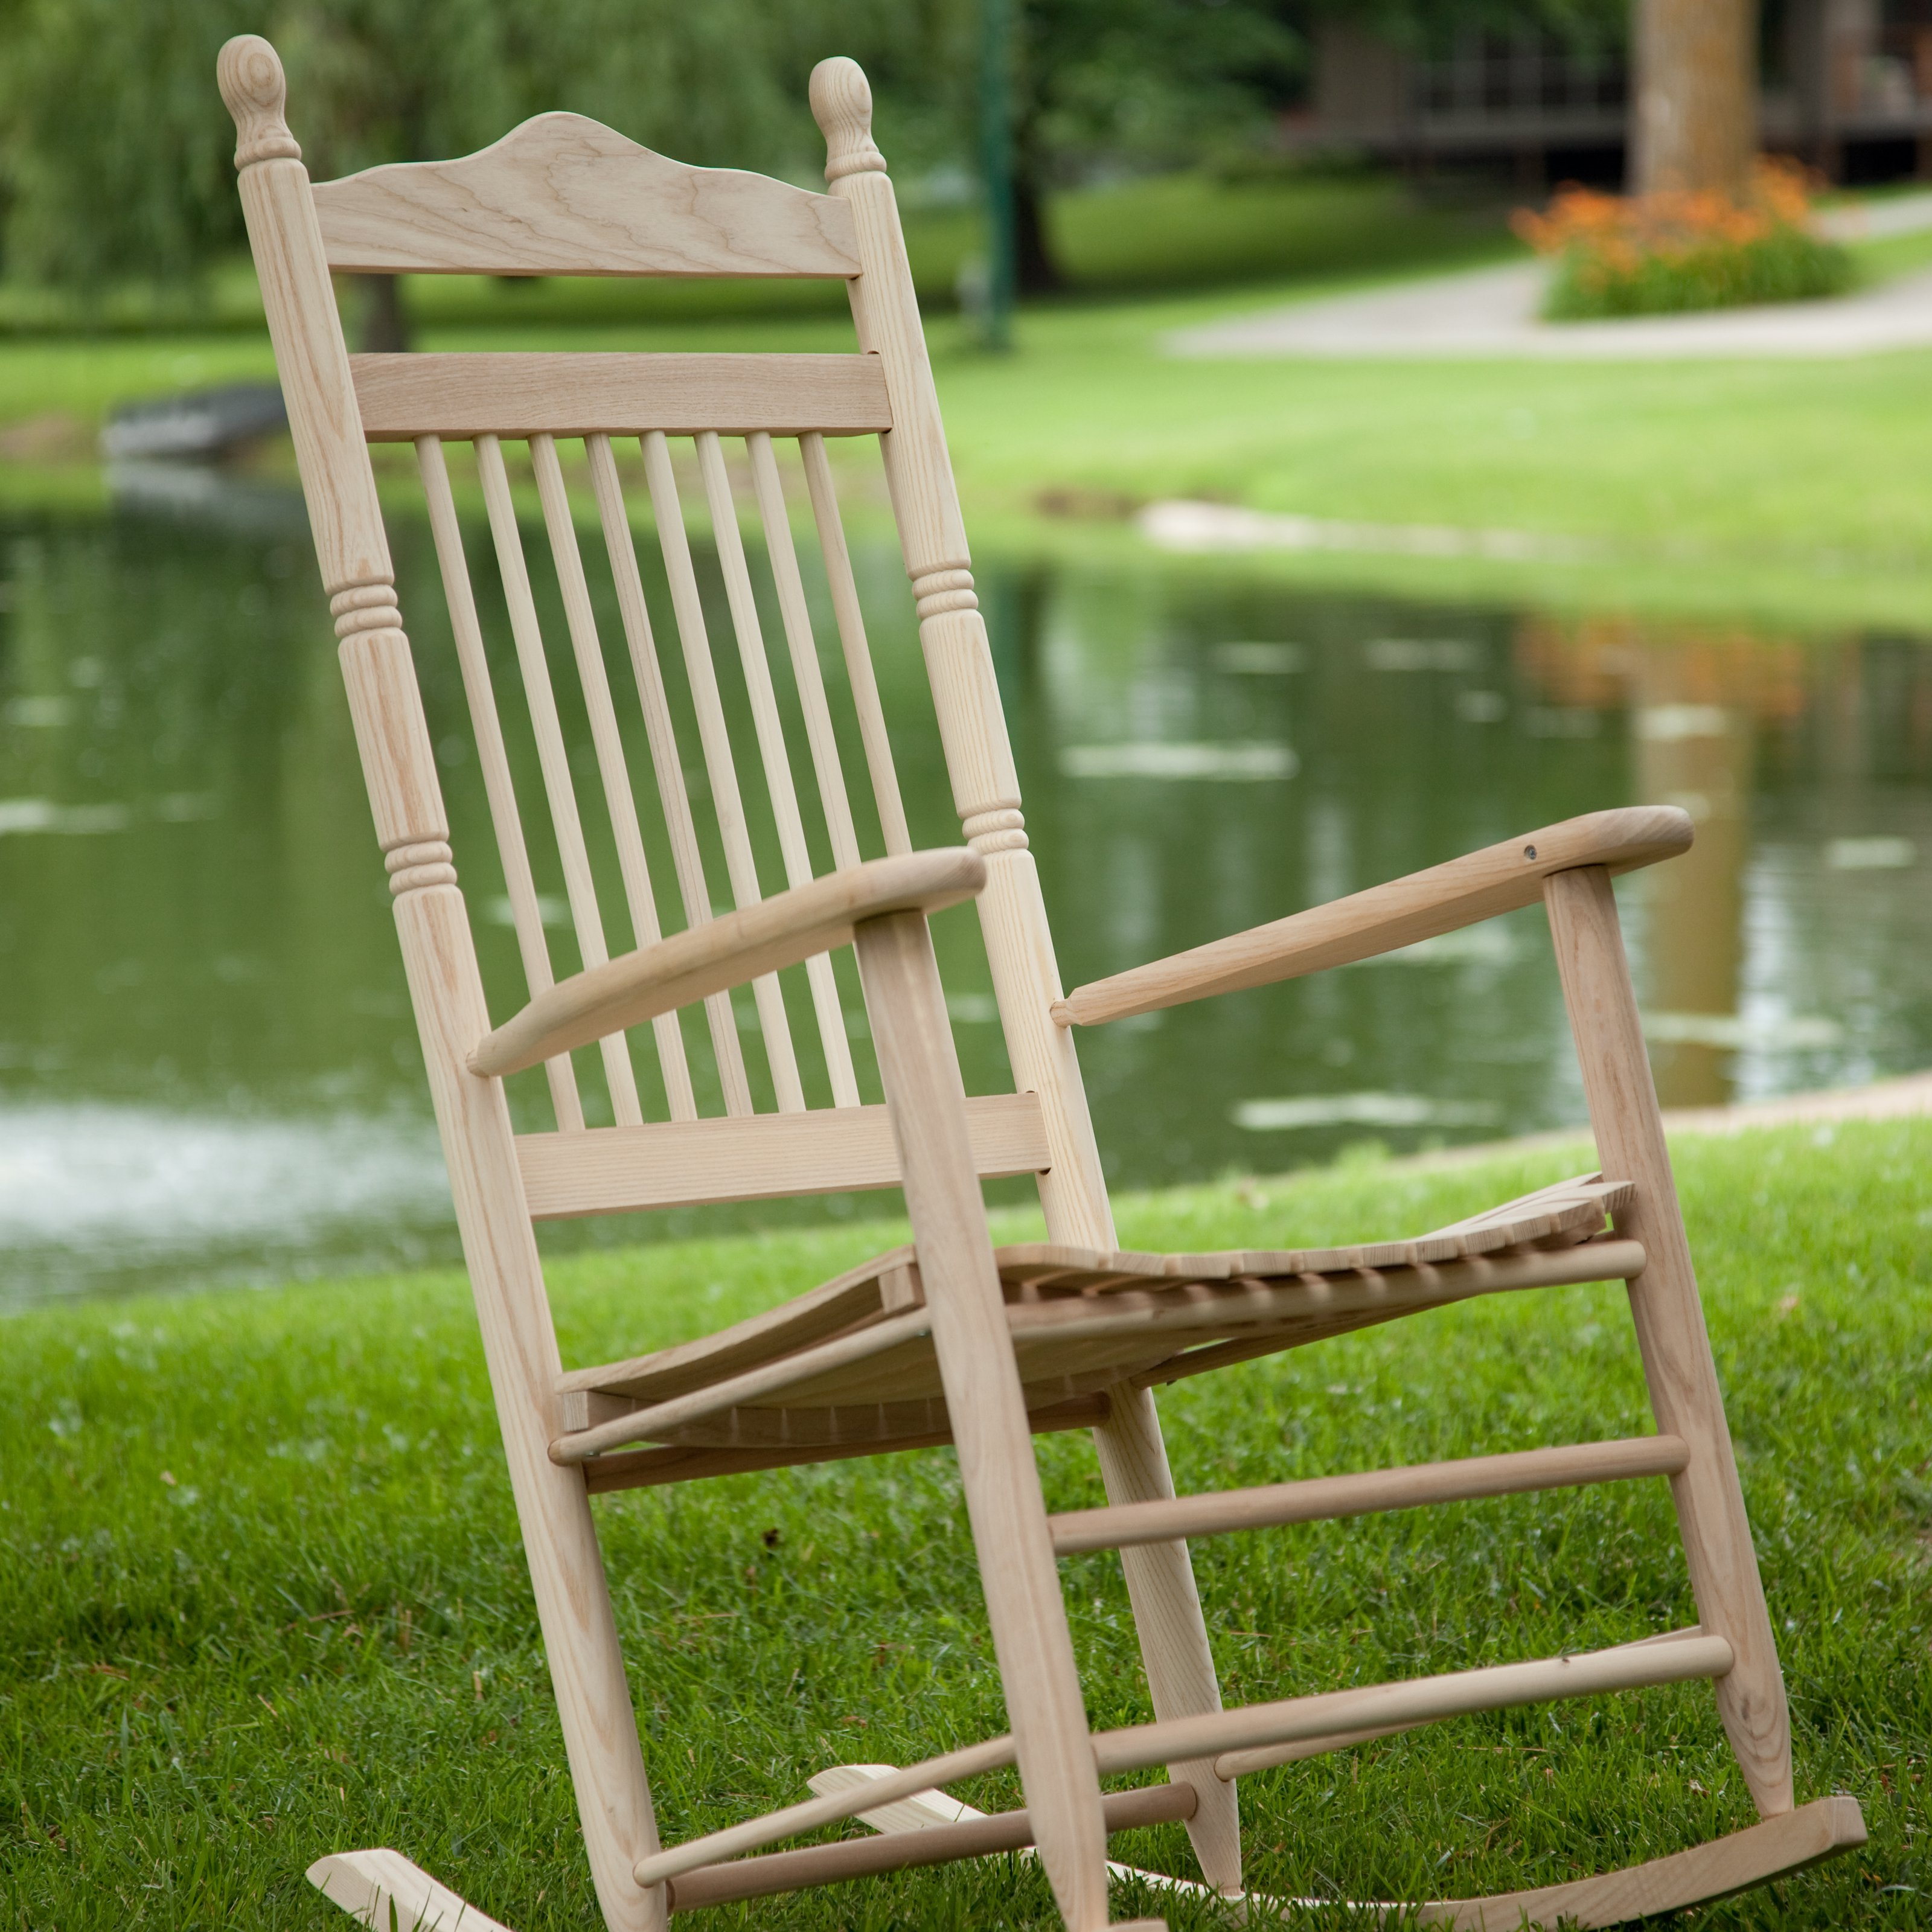 Dixie Seating Indoor/Outdoor Spindle Rocking Chair - Unfinished